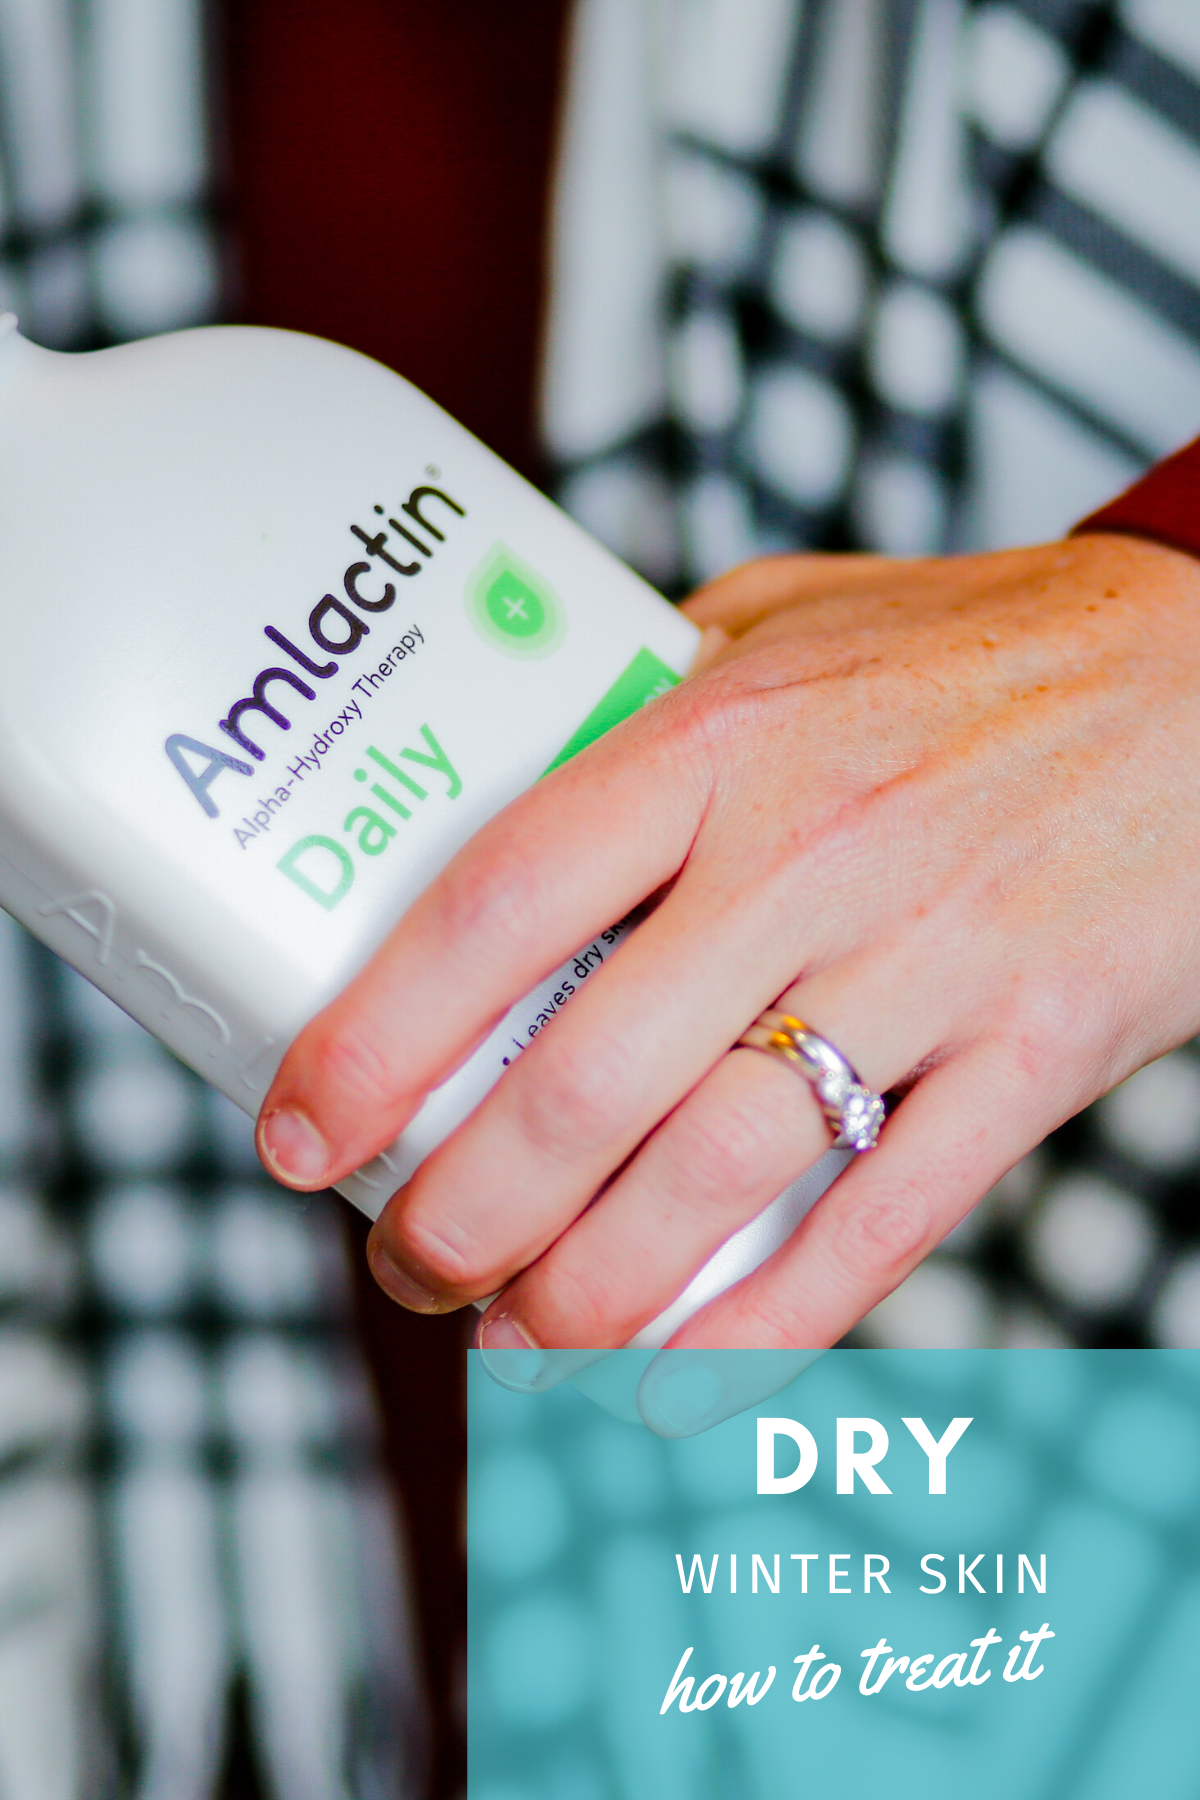 Struggling with dry skin? These are the winter skincare tips contain everything you need to get your skin back to normal!